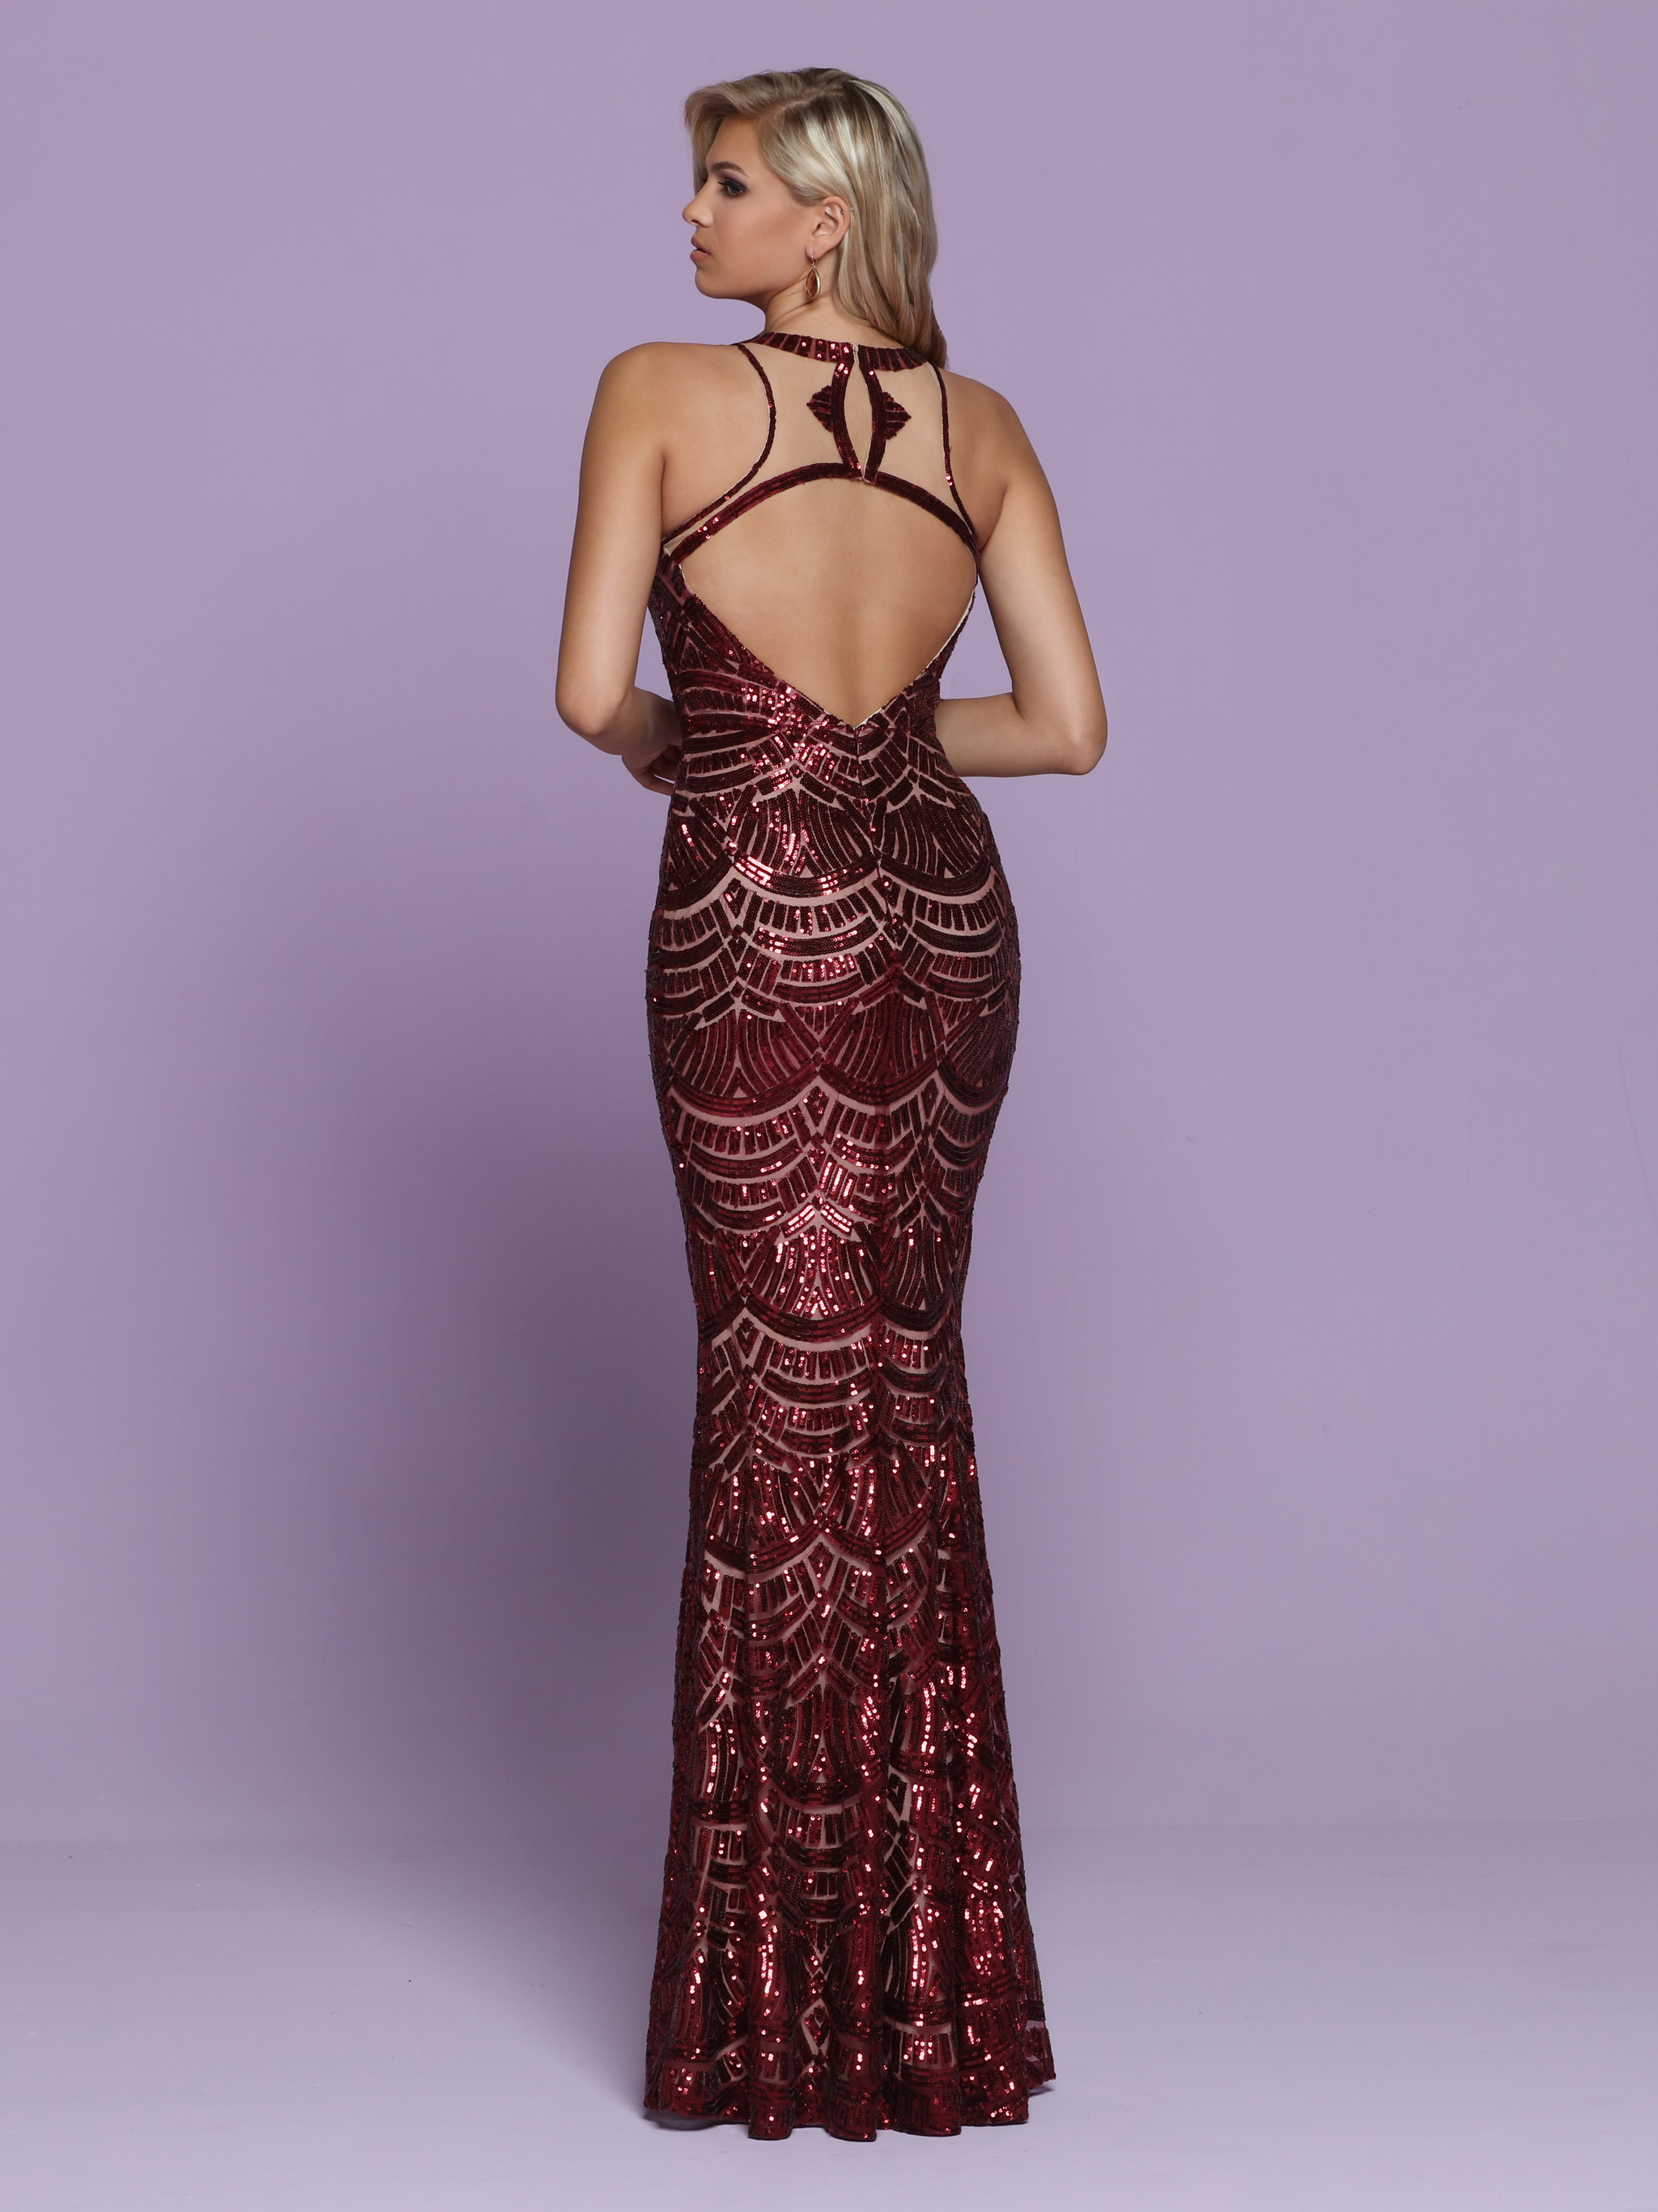 Image showing back view of style #72037